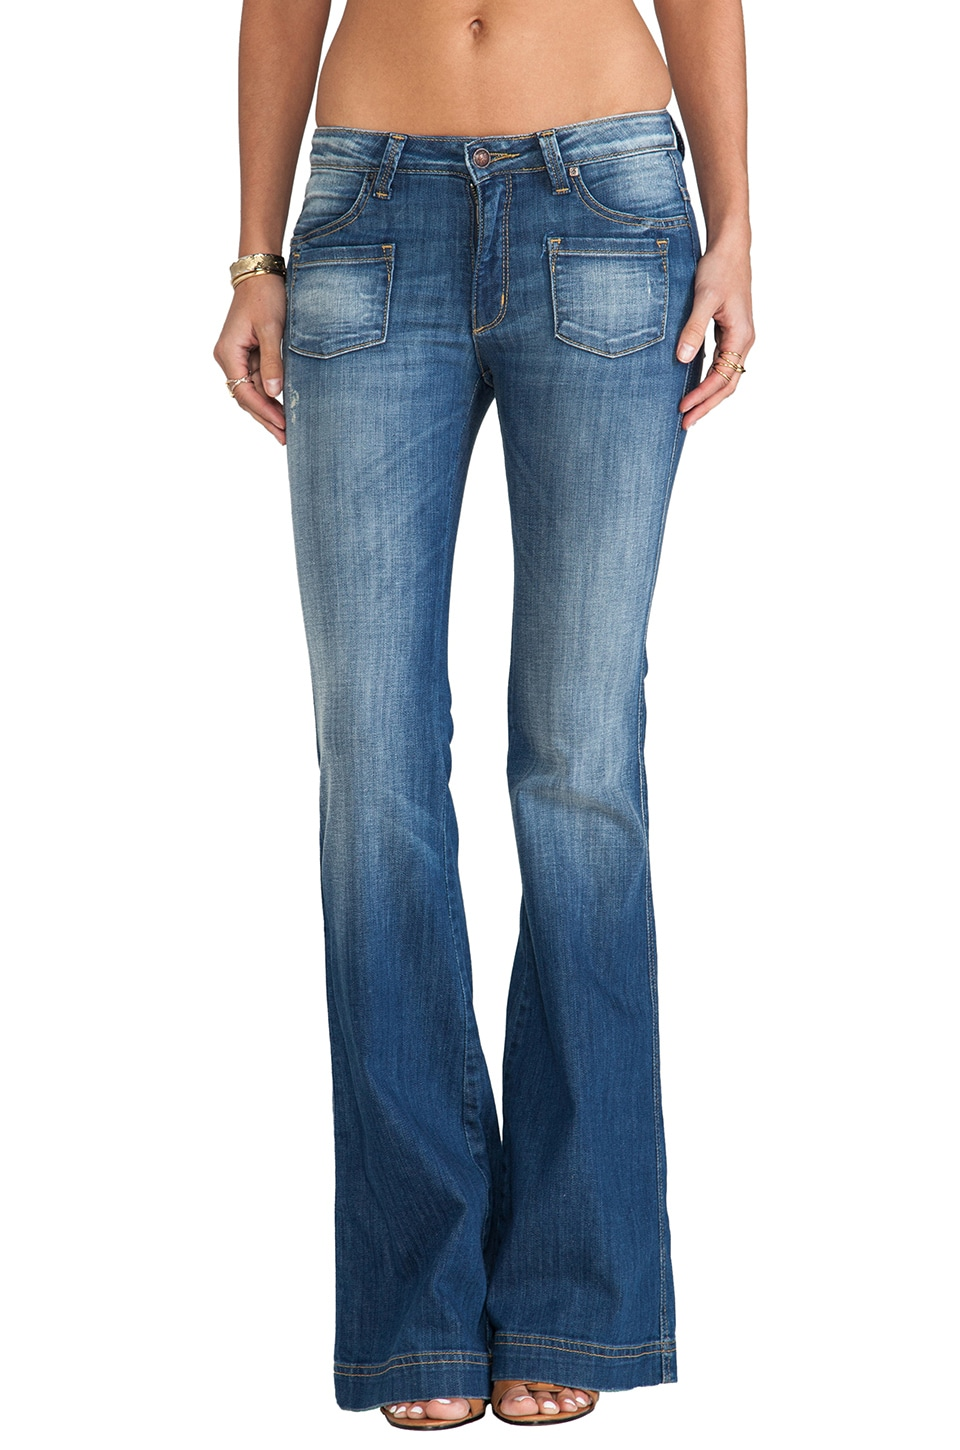 Frankie B. Jeans Carly Hi Rise Wide Leg in Japan Blue